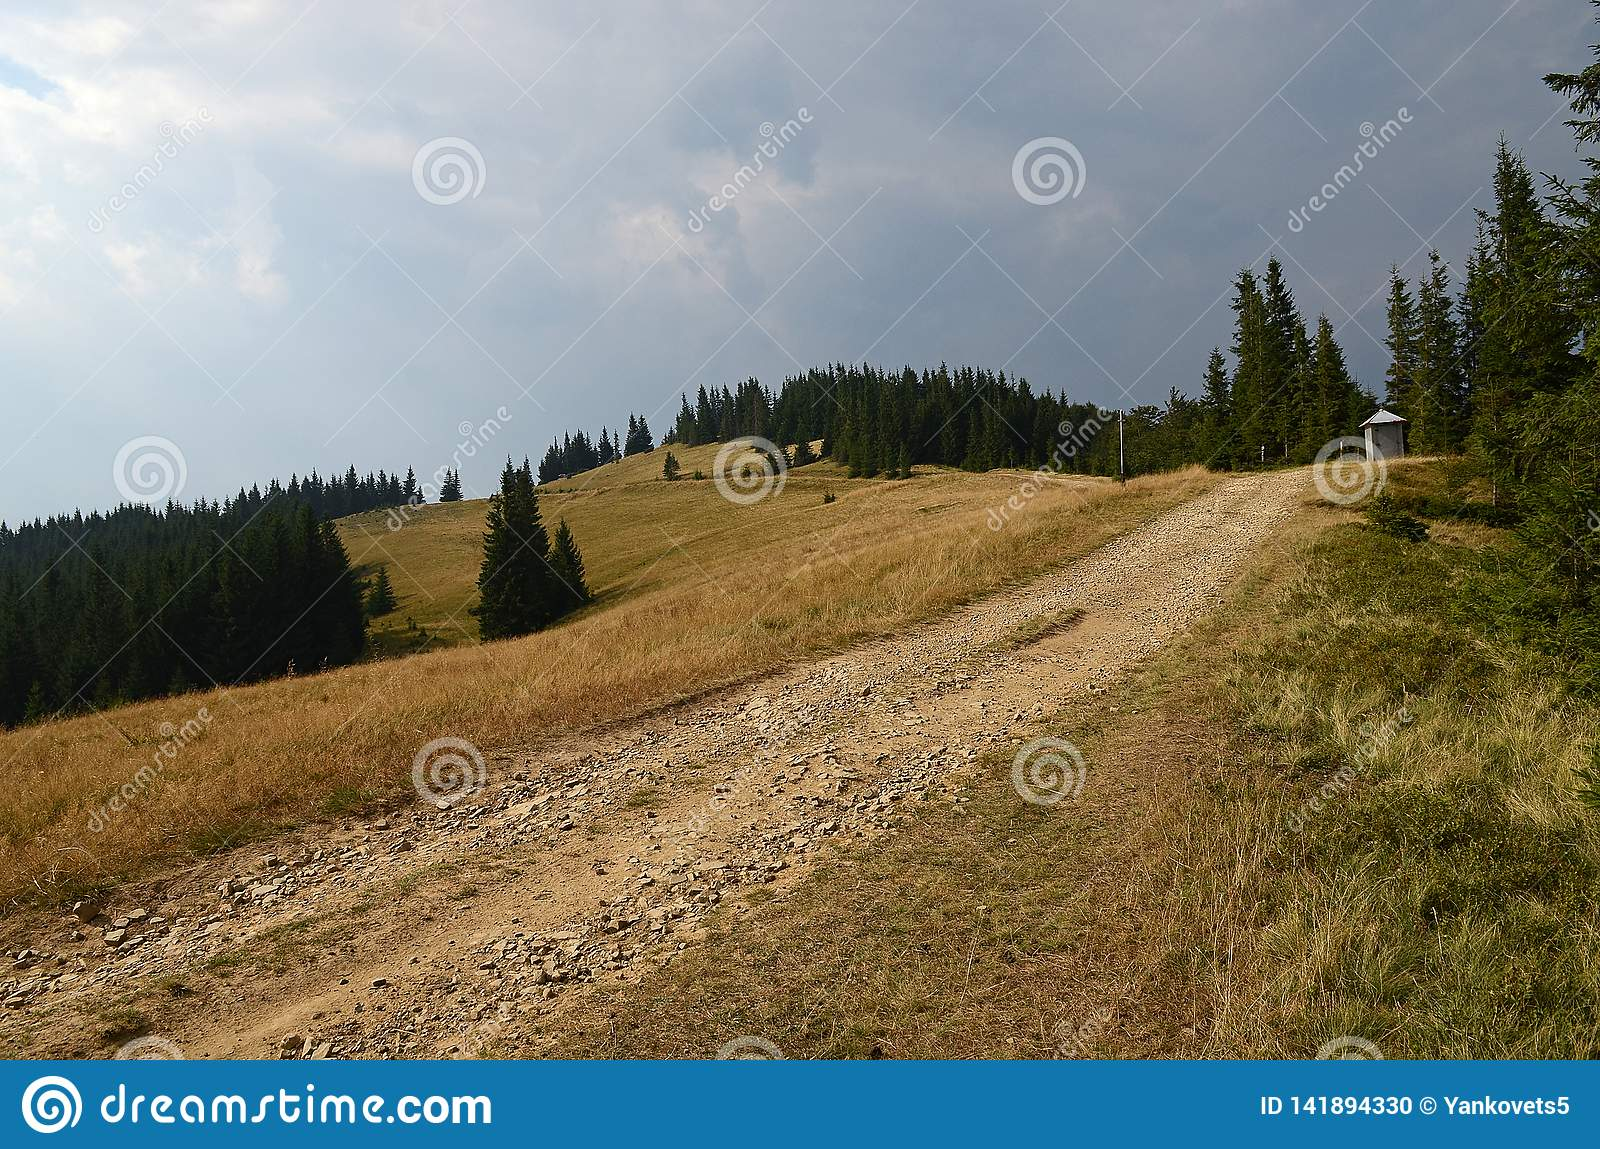 Dirt road high in the mountains among the tall pine trees against the blue sky.